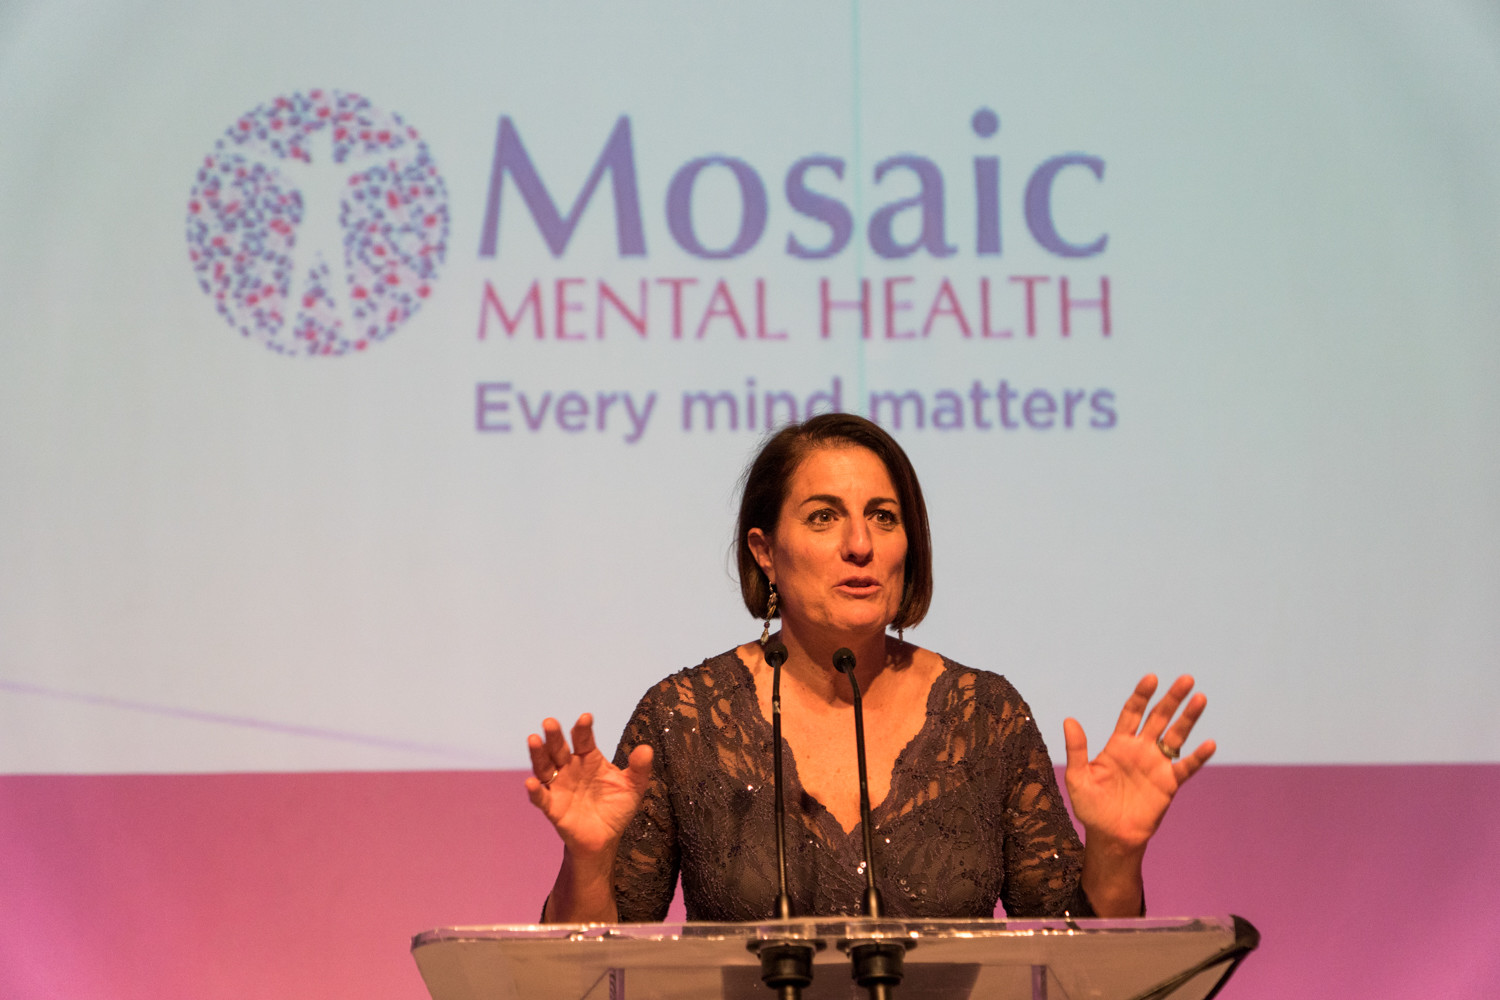 The gala held by Mosaic Mental Health, formerly known as Riverdale Mental Health Association, is part of its rebranding effort, according to Donna Demetri Friedman, Mosaic's executive director. The organization serves 1,000 patients annually.